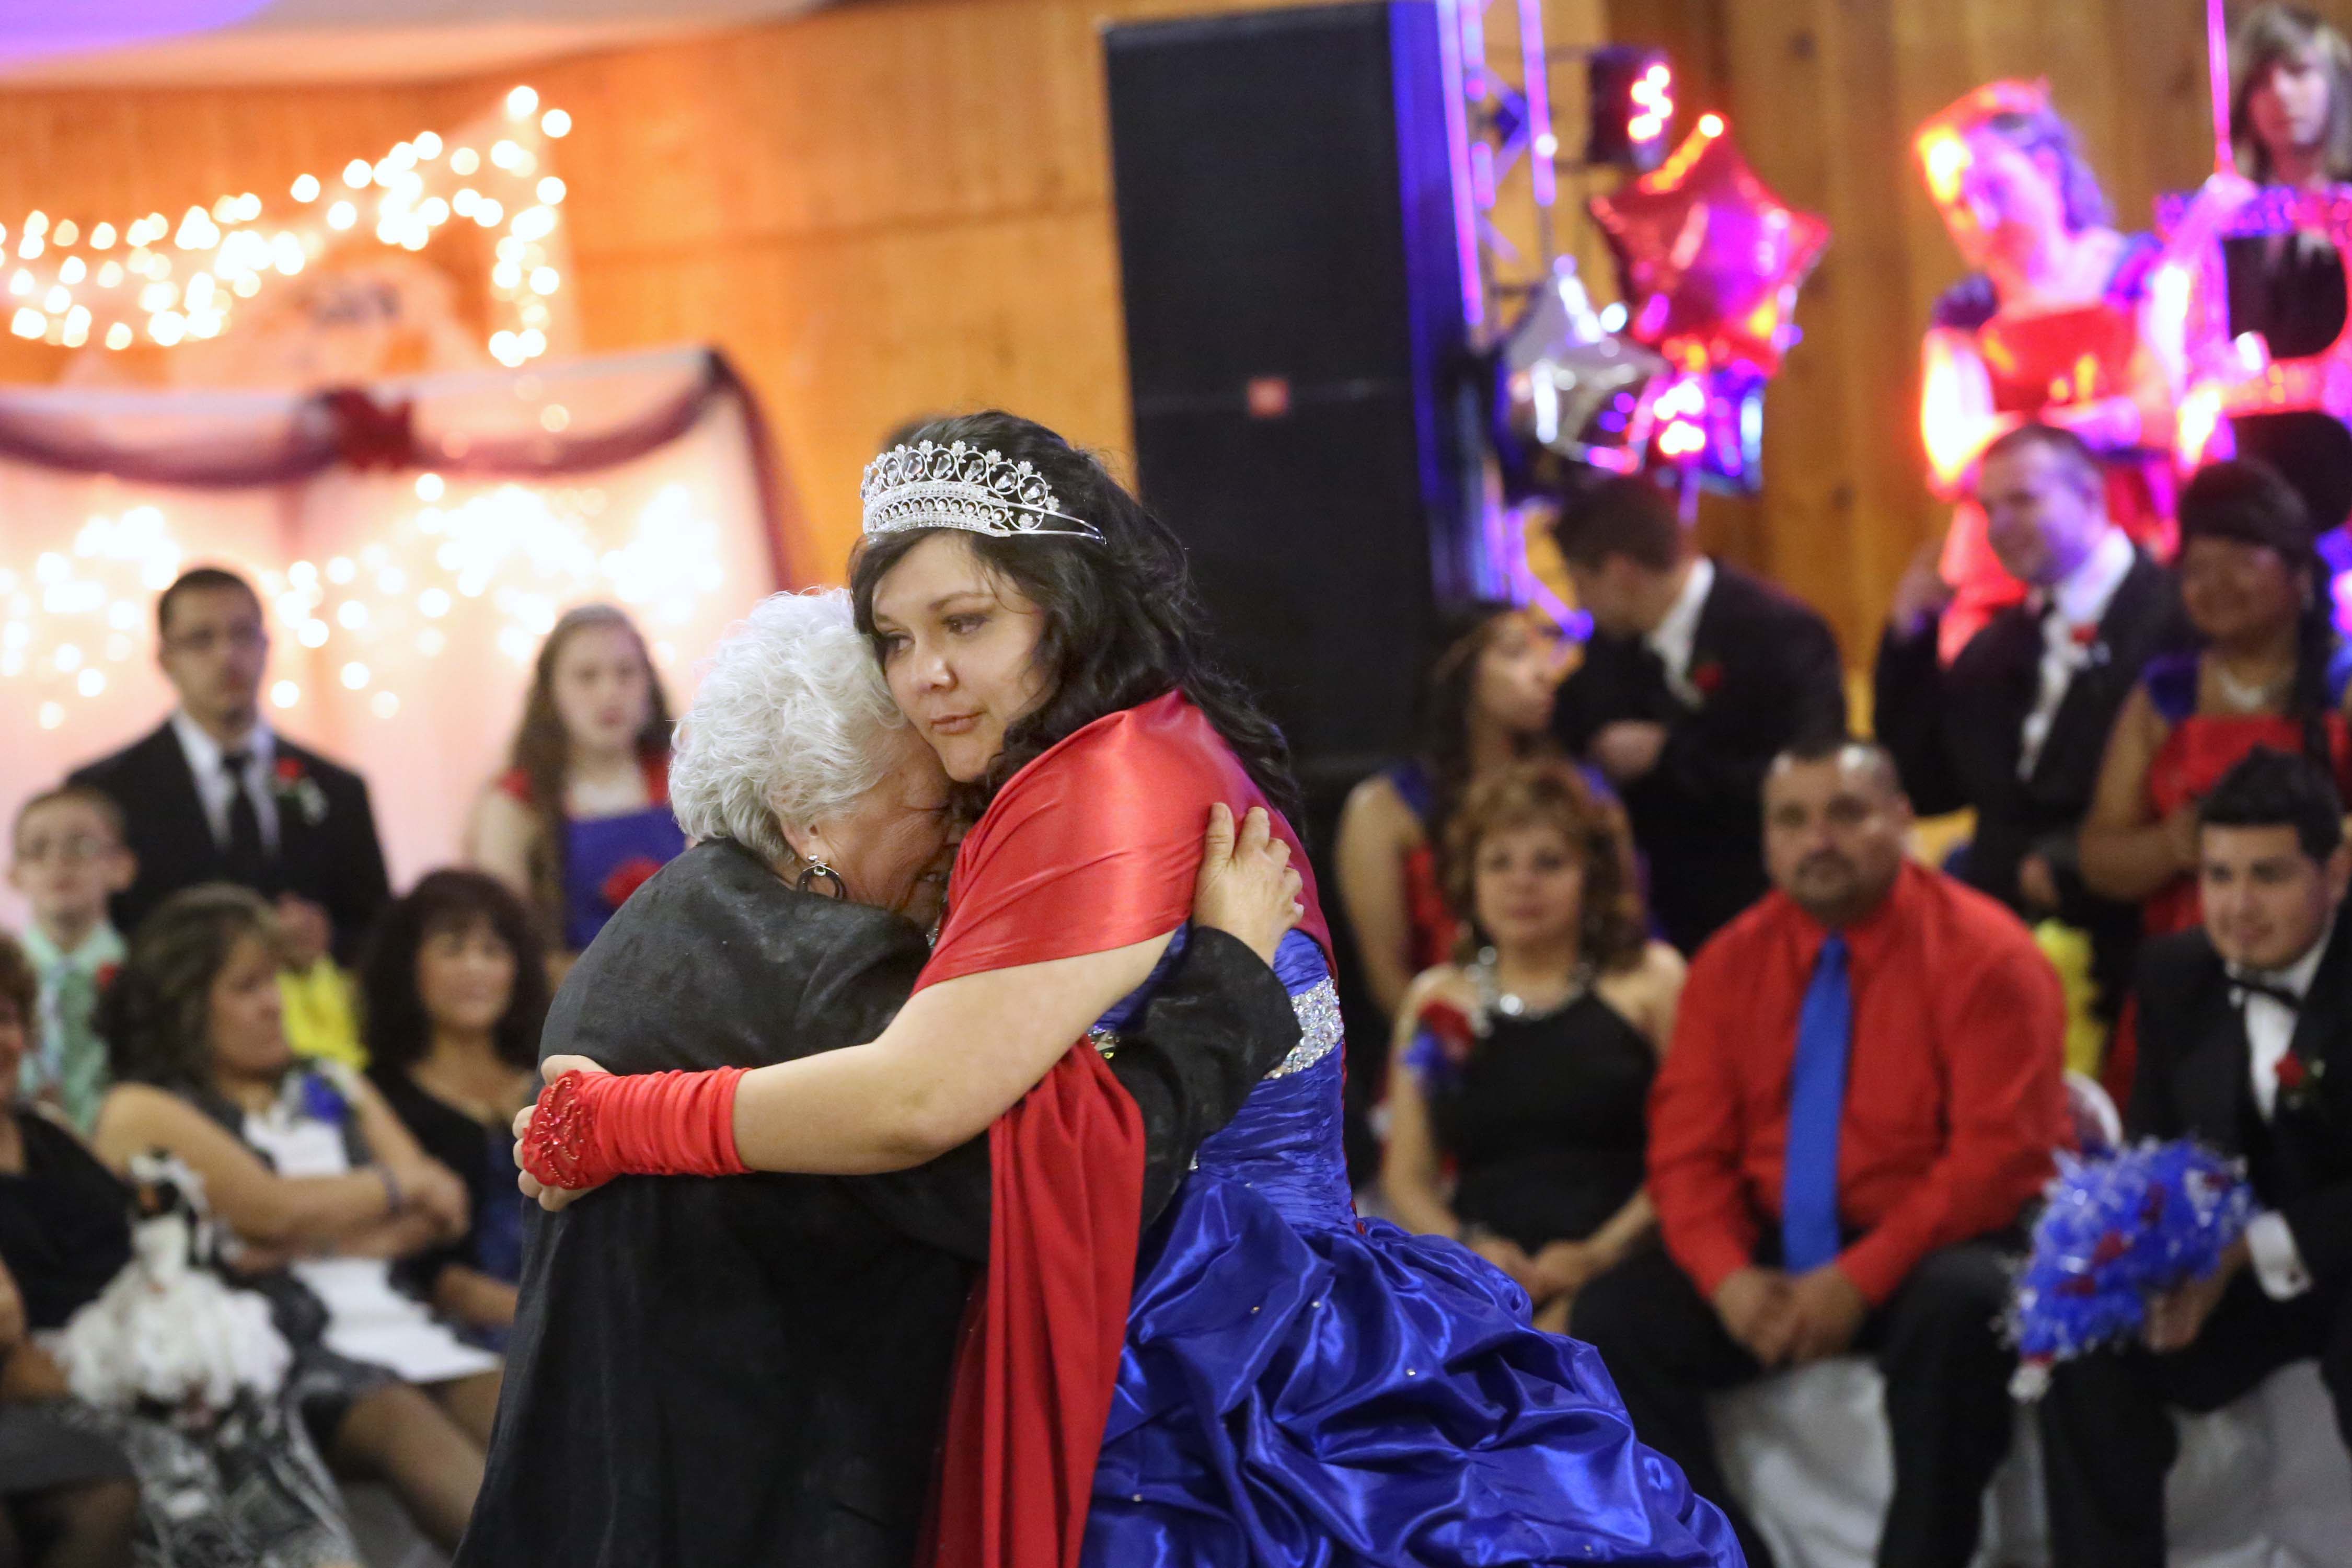 QUINCEANERA: Ceremony Marks Girl's Transition To Womanhood